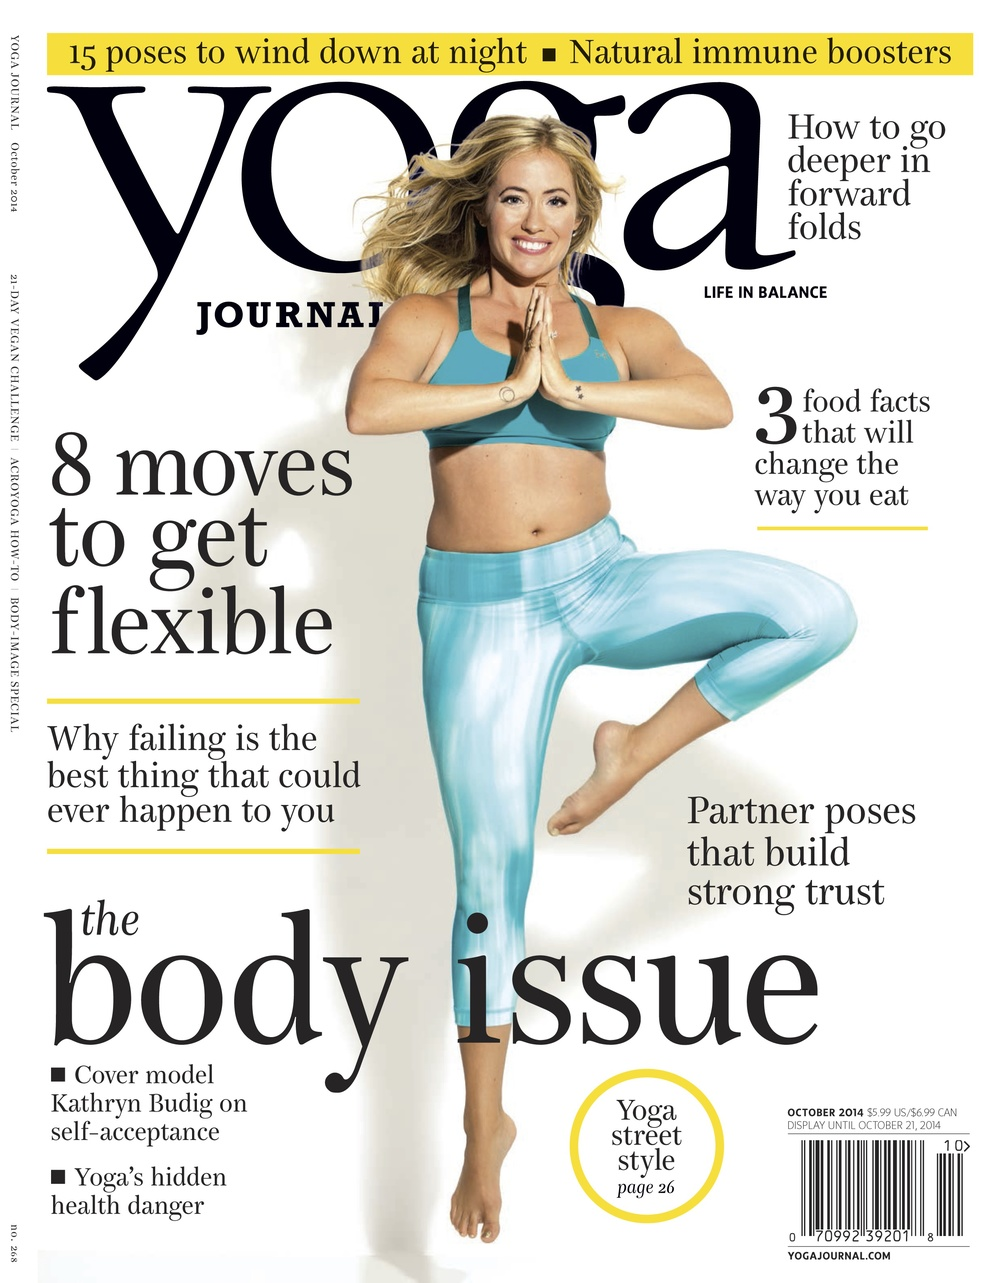 October 2014 - Yoga Journal cover - Fabletics.jpg